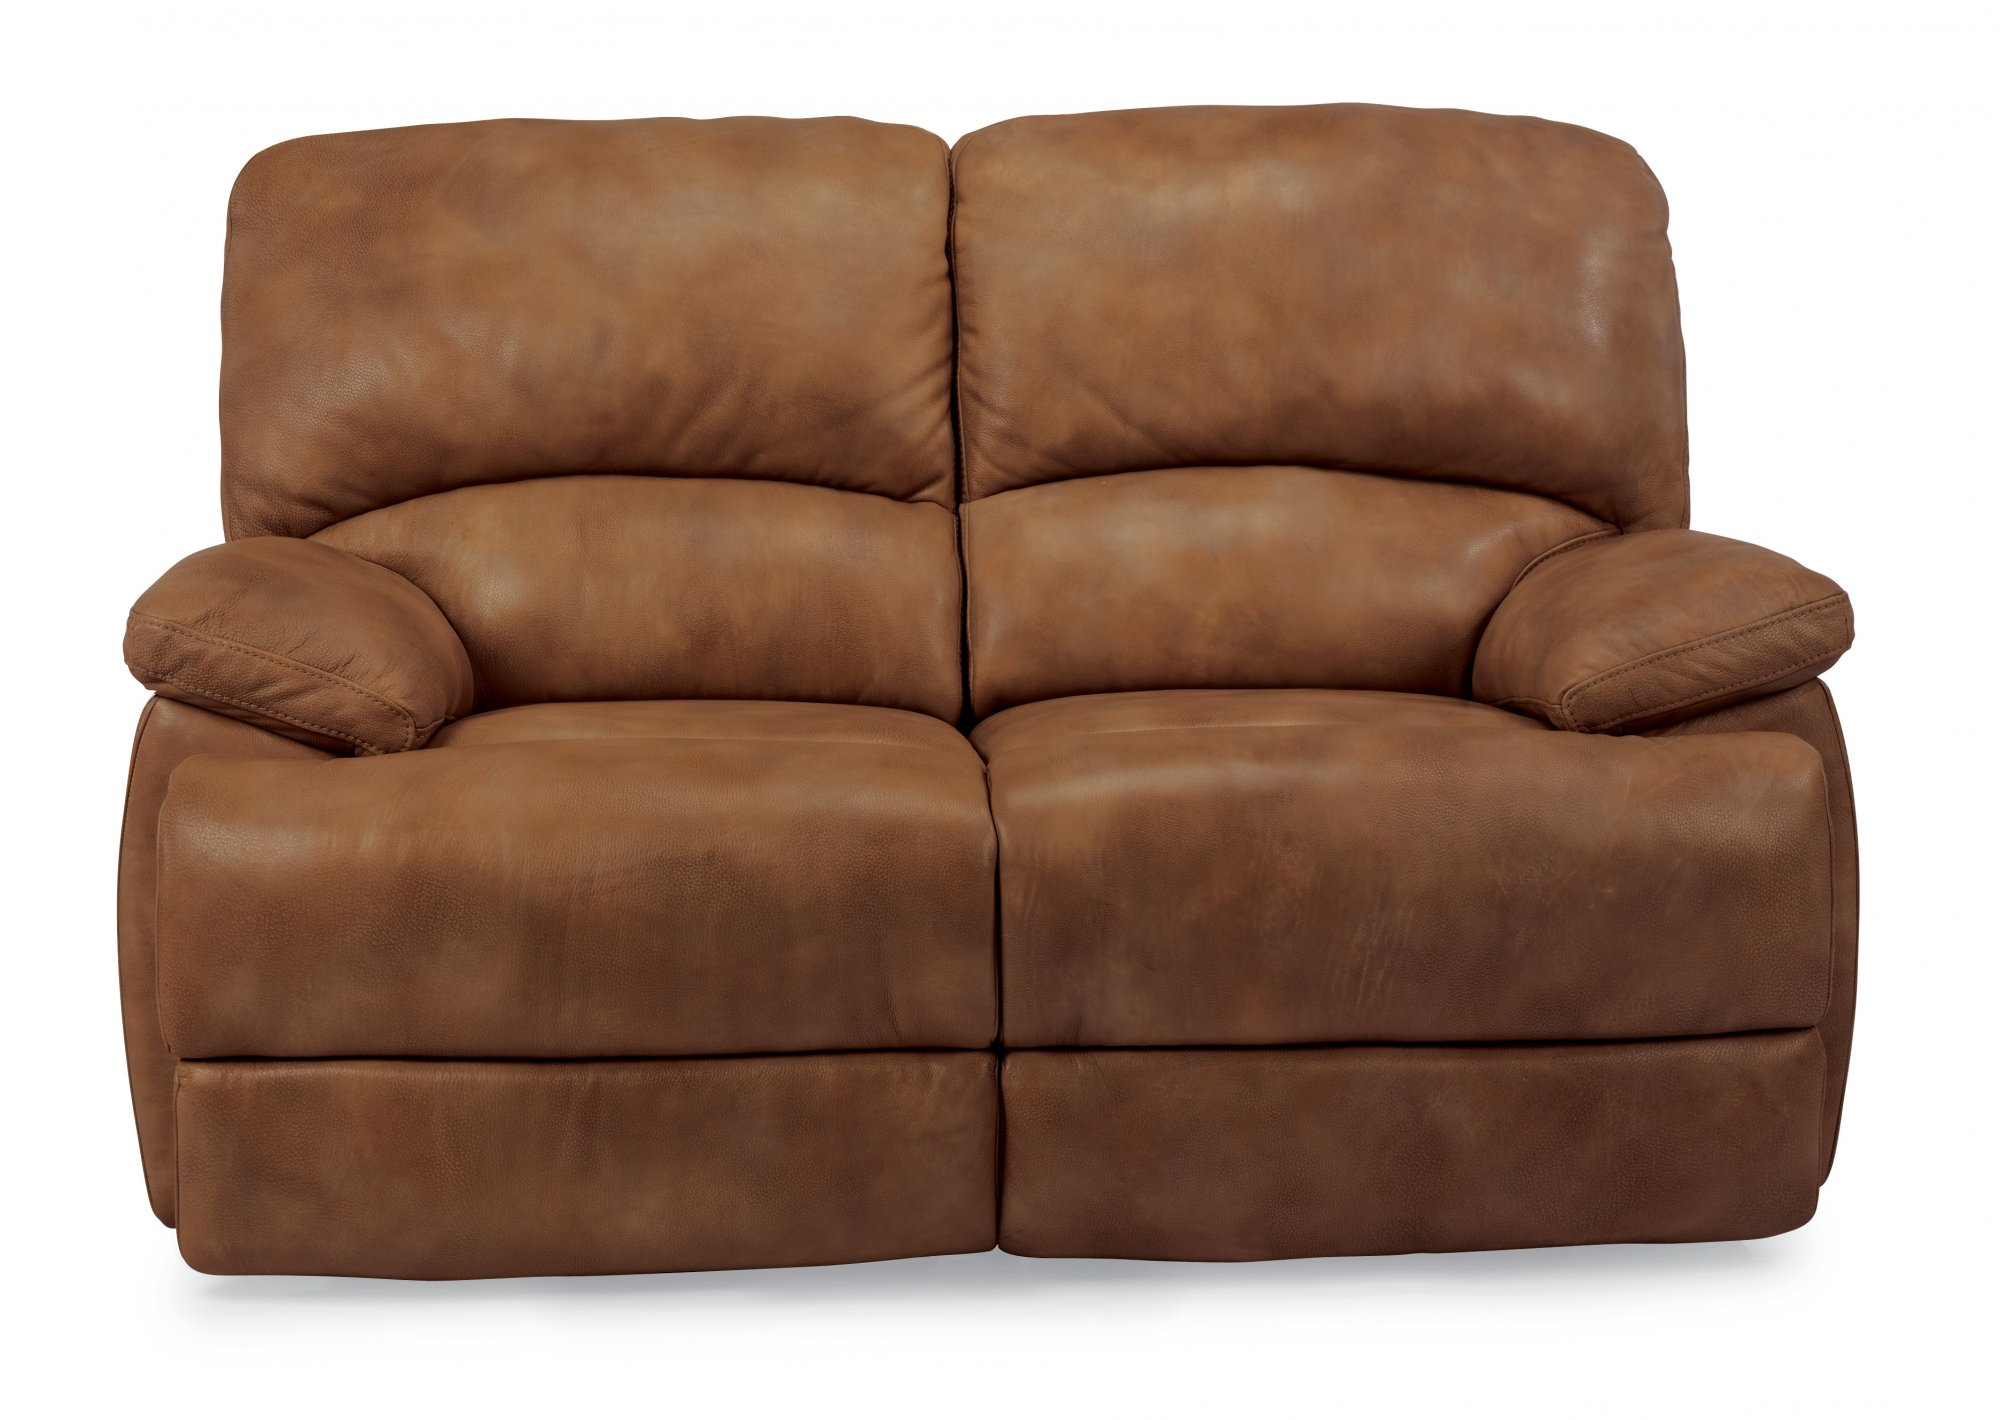 Admirable Flexsteel 1127 60 Dylan Leather Reclining Loveseat Pdpeps Interior Chair Design Pdpepsorg